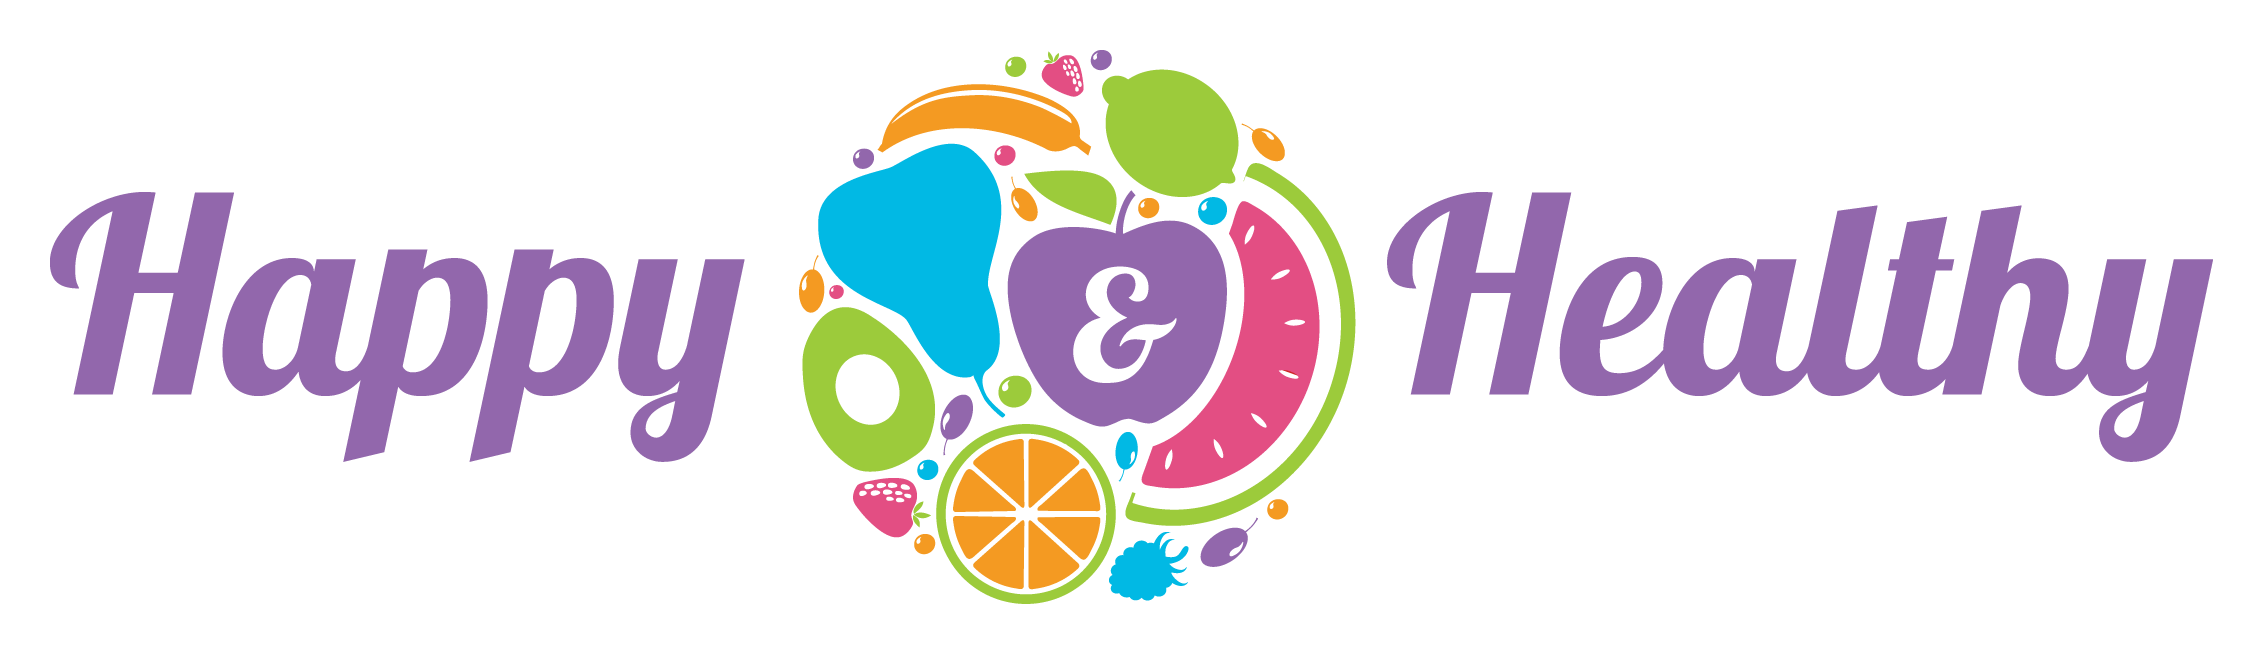 Create a logo and website for an exciting new nutrition and mindset coaching company!